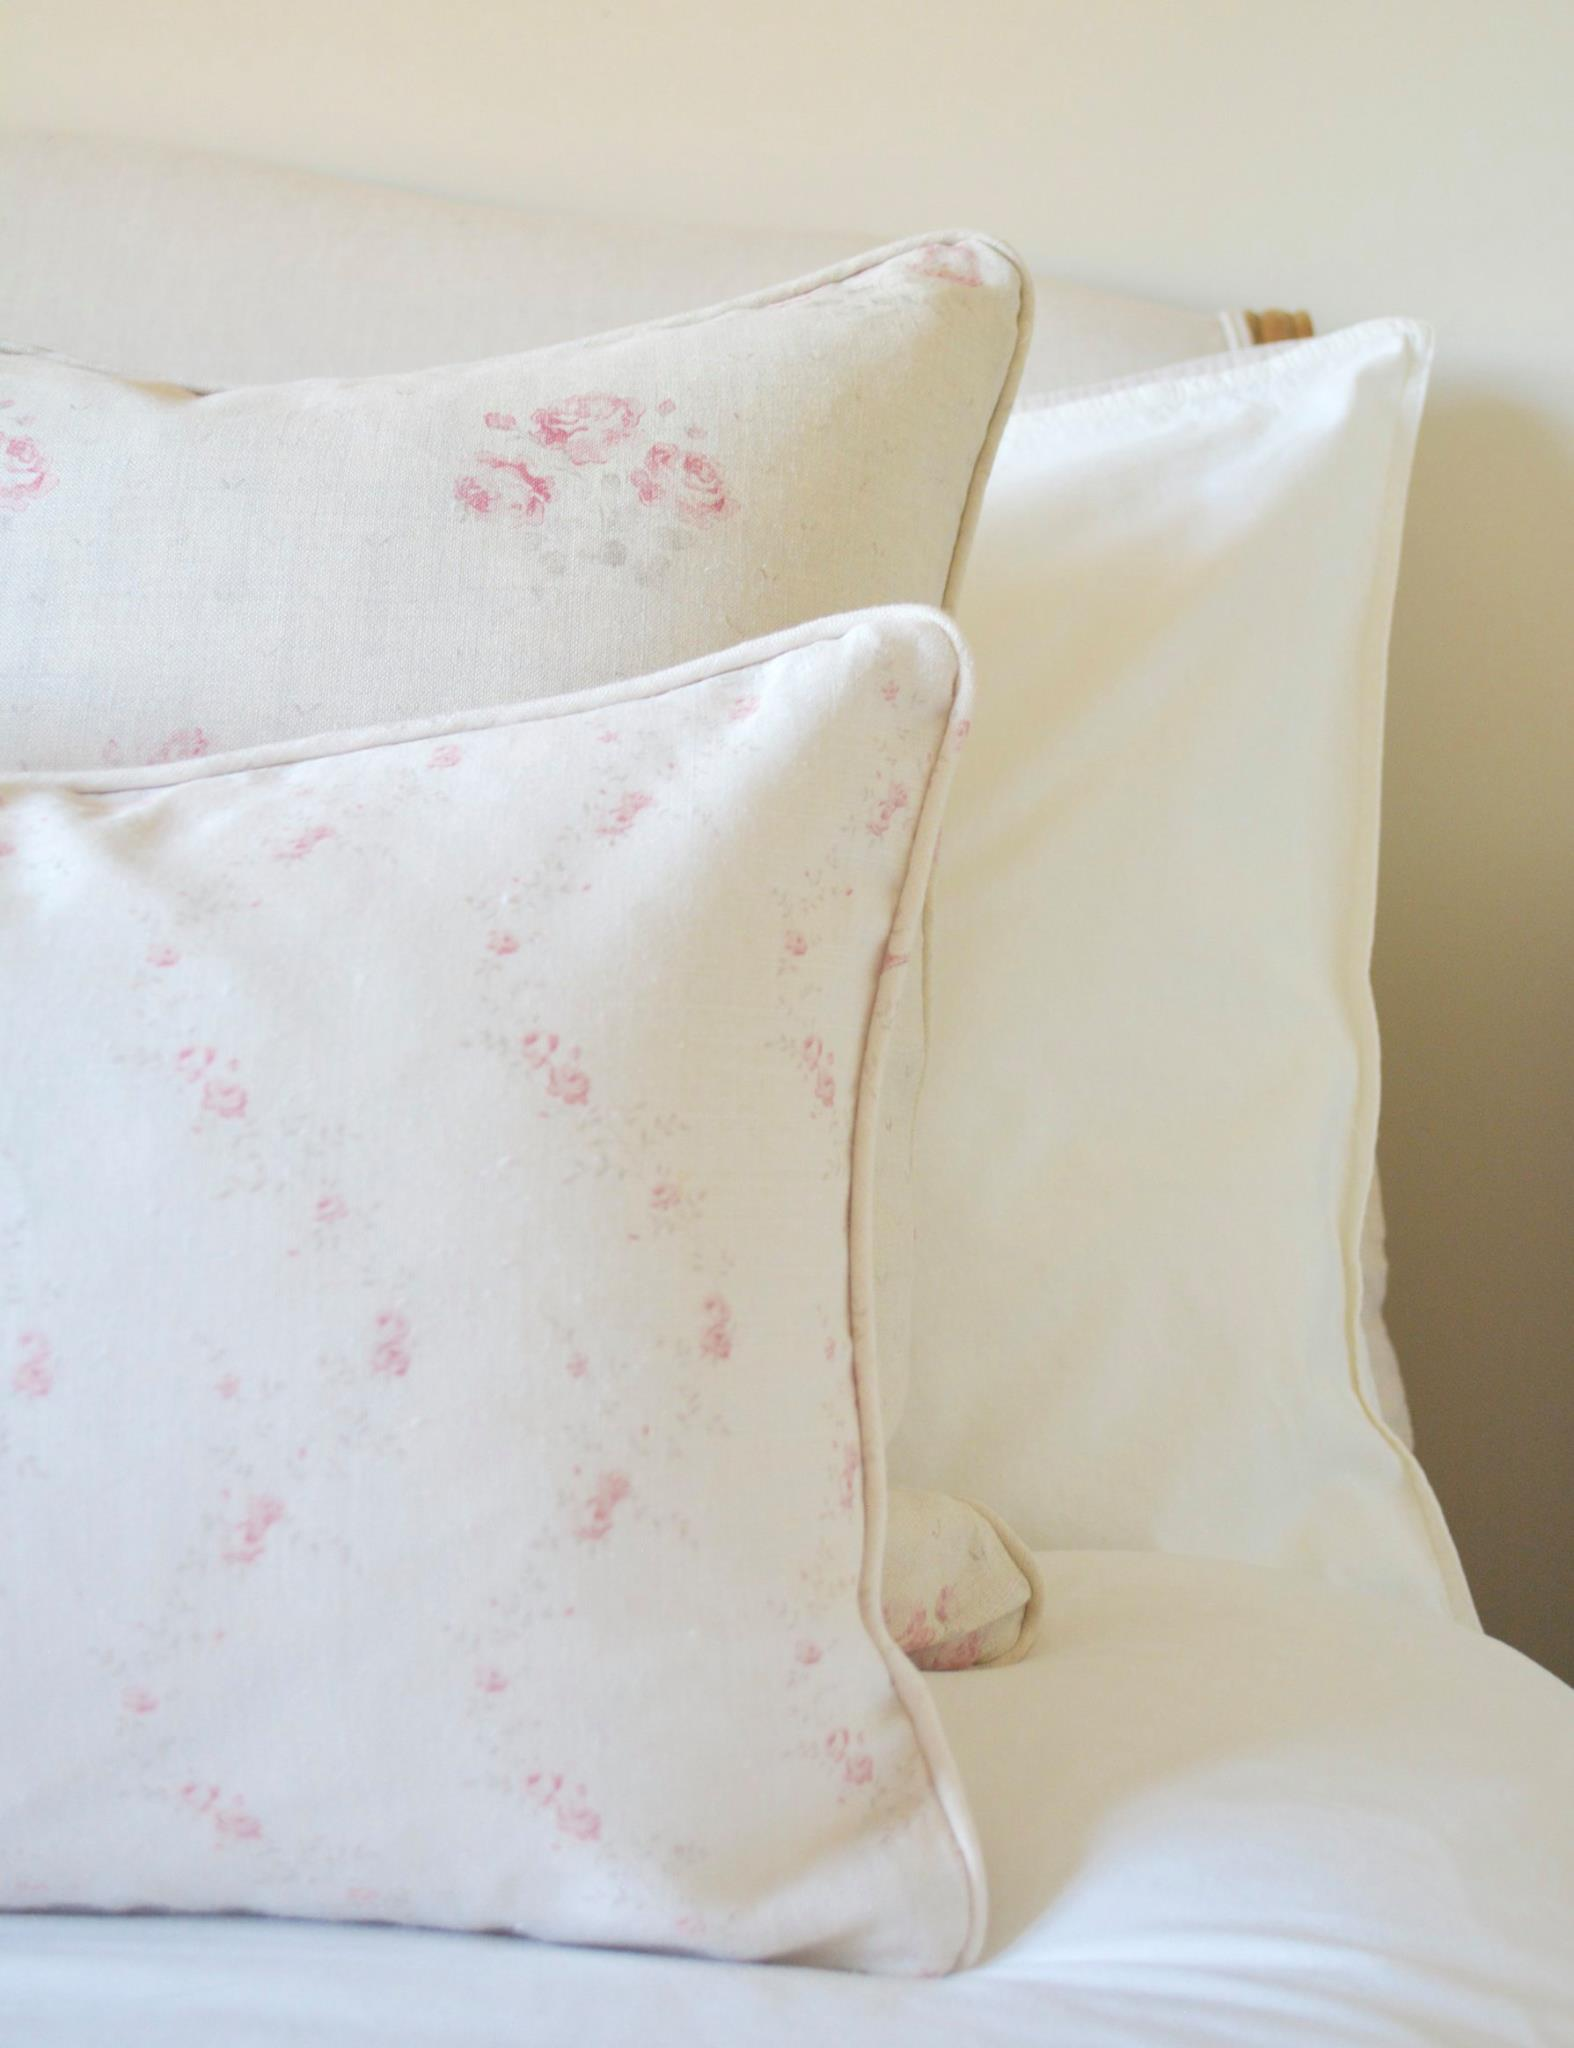 Cottage Bedroom with faded floral linens designed by www.hlinteriors.co.uk2.jpg